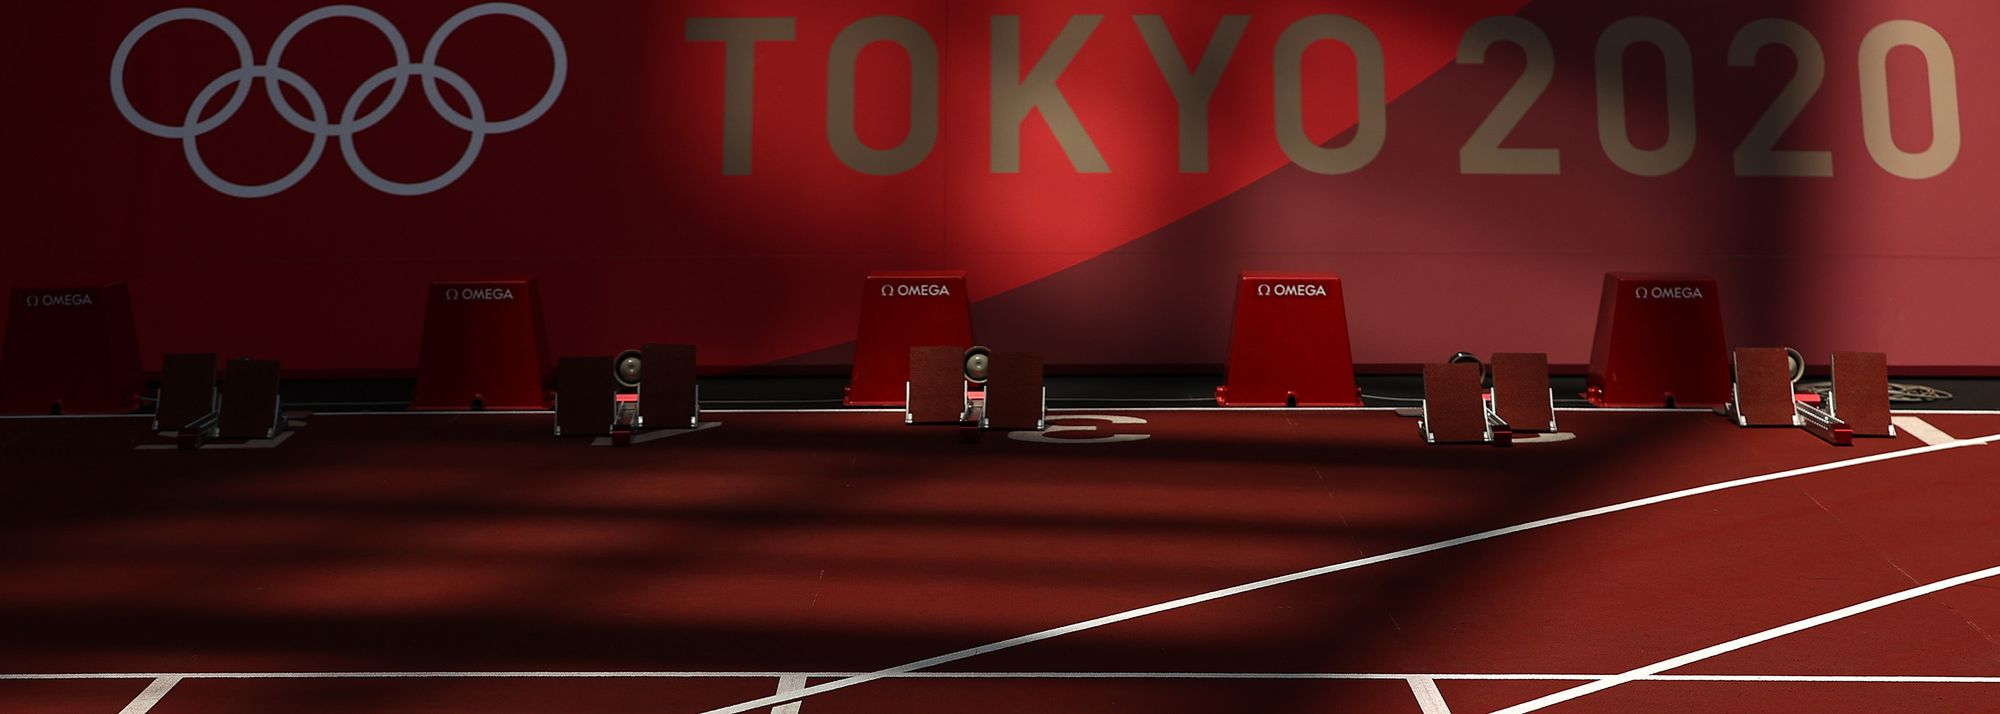 As we count down the final moments until the first athletics session at the Tokyo Olympic Games, here are 10 key figures to keep an eye on throughout the next 10 days.